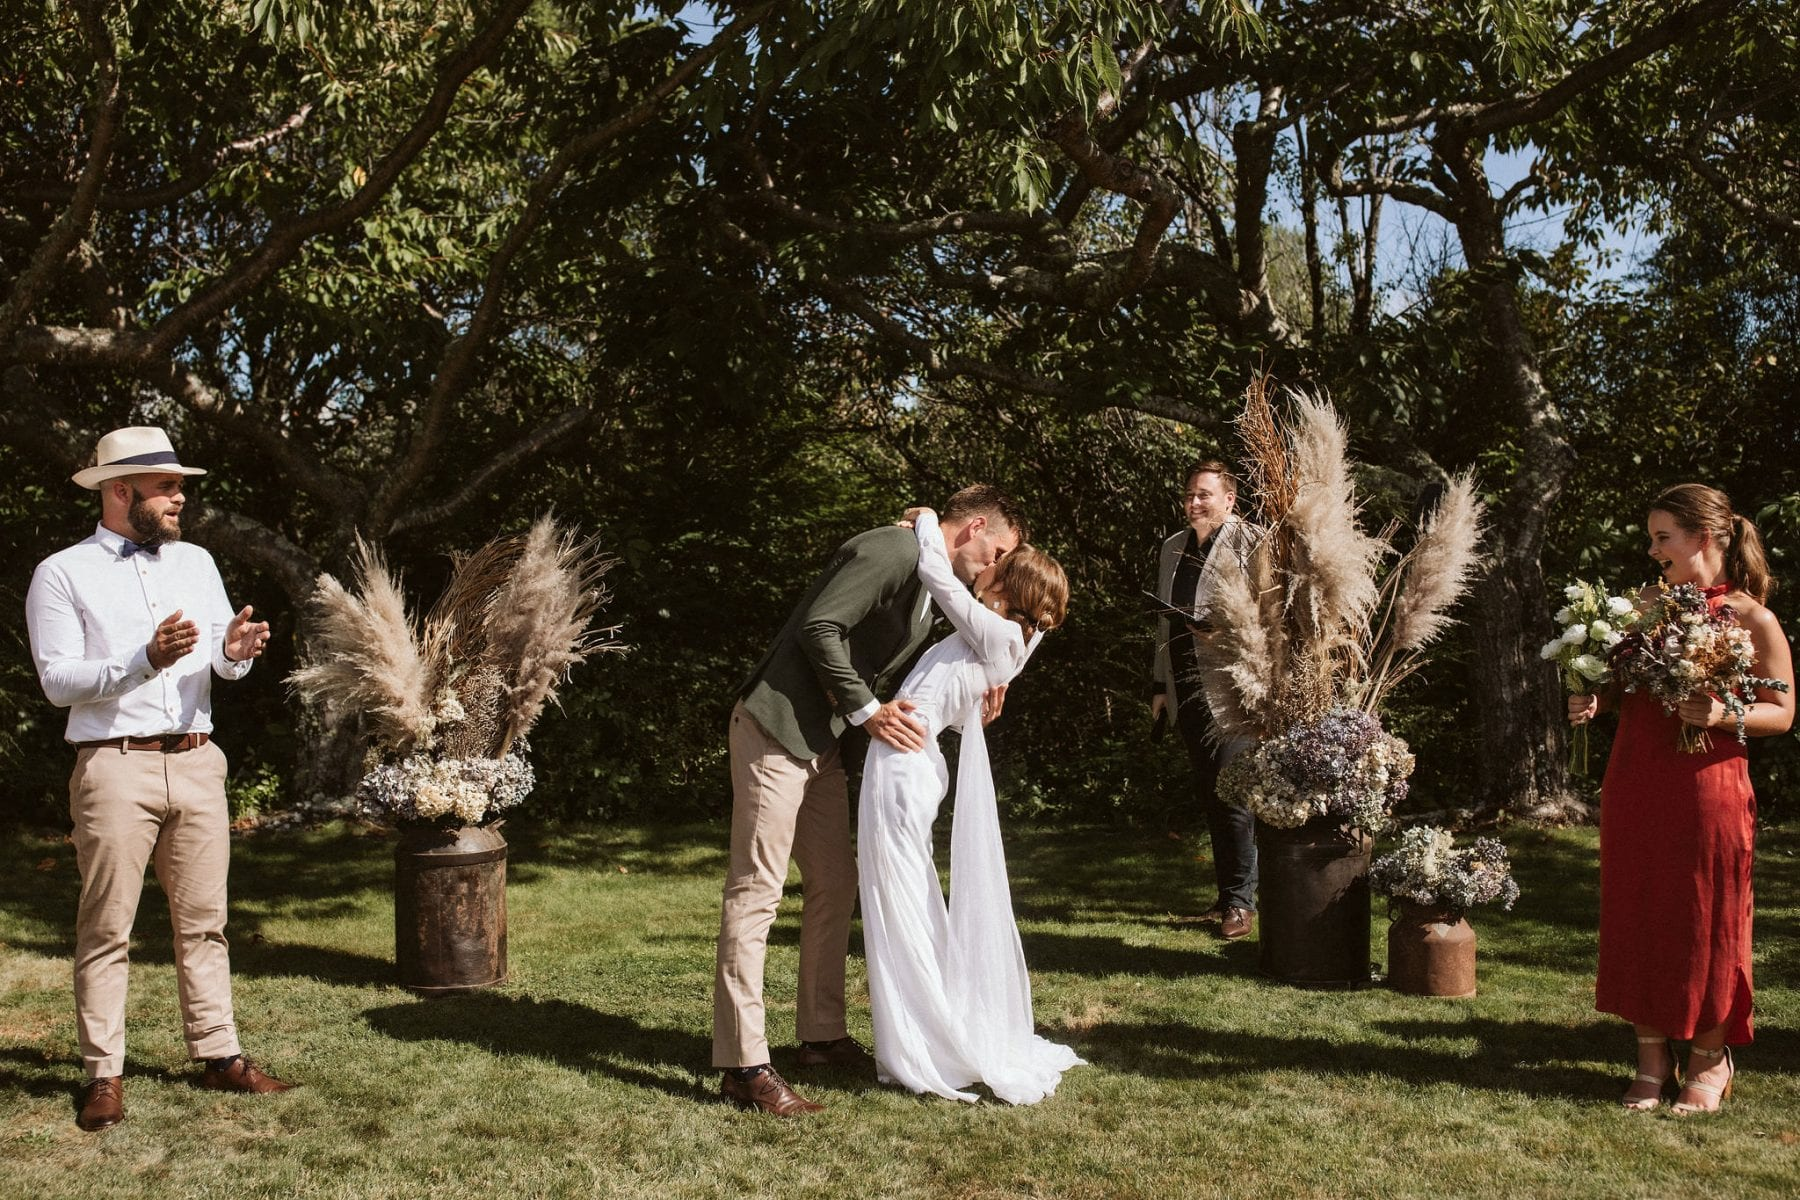 Sarah + Jeremy \\ Taupo Wedding captured by Ana Galloway. Hayes Bridal, Meadowlark. Modern Bride. New Zealand.